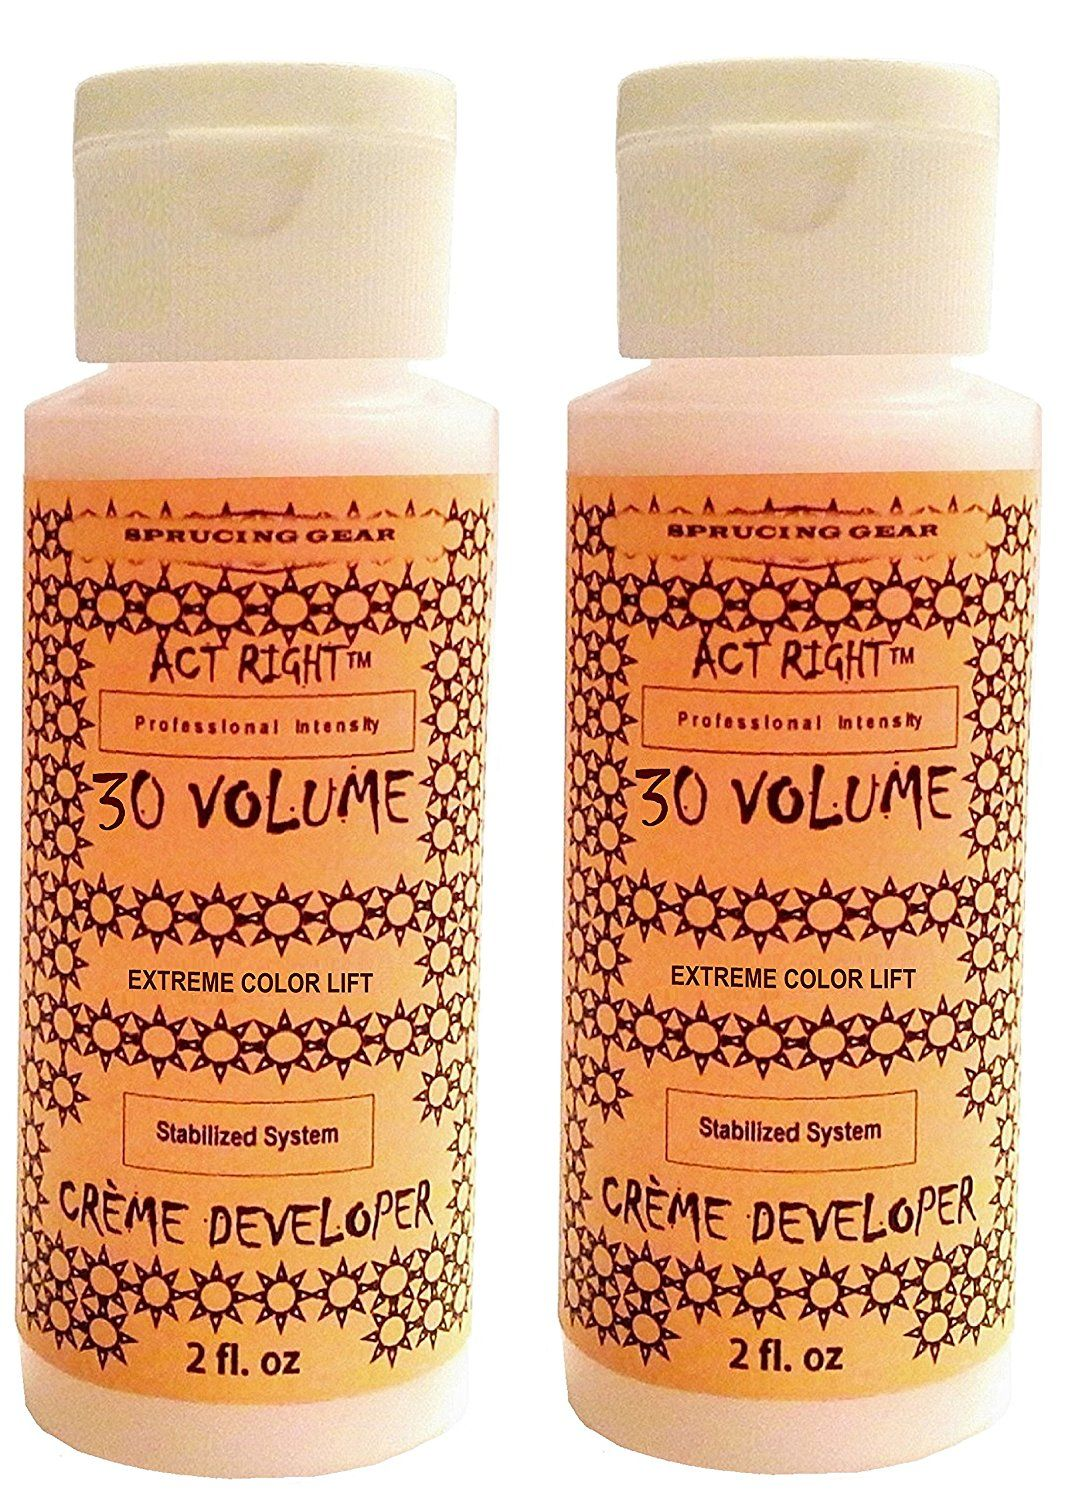 Act Right 30 Volume Extreme Lightening Hair Color Cream Developer 4 oz. (120 ml) -- Click image to review more details. (This is an Amazon affiliate link)